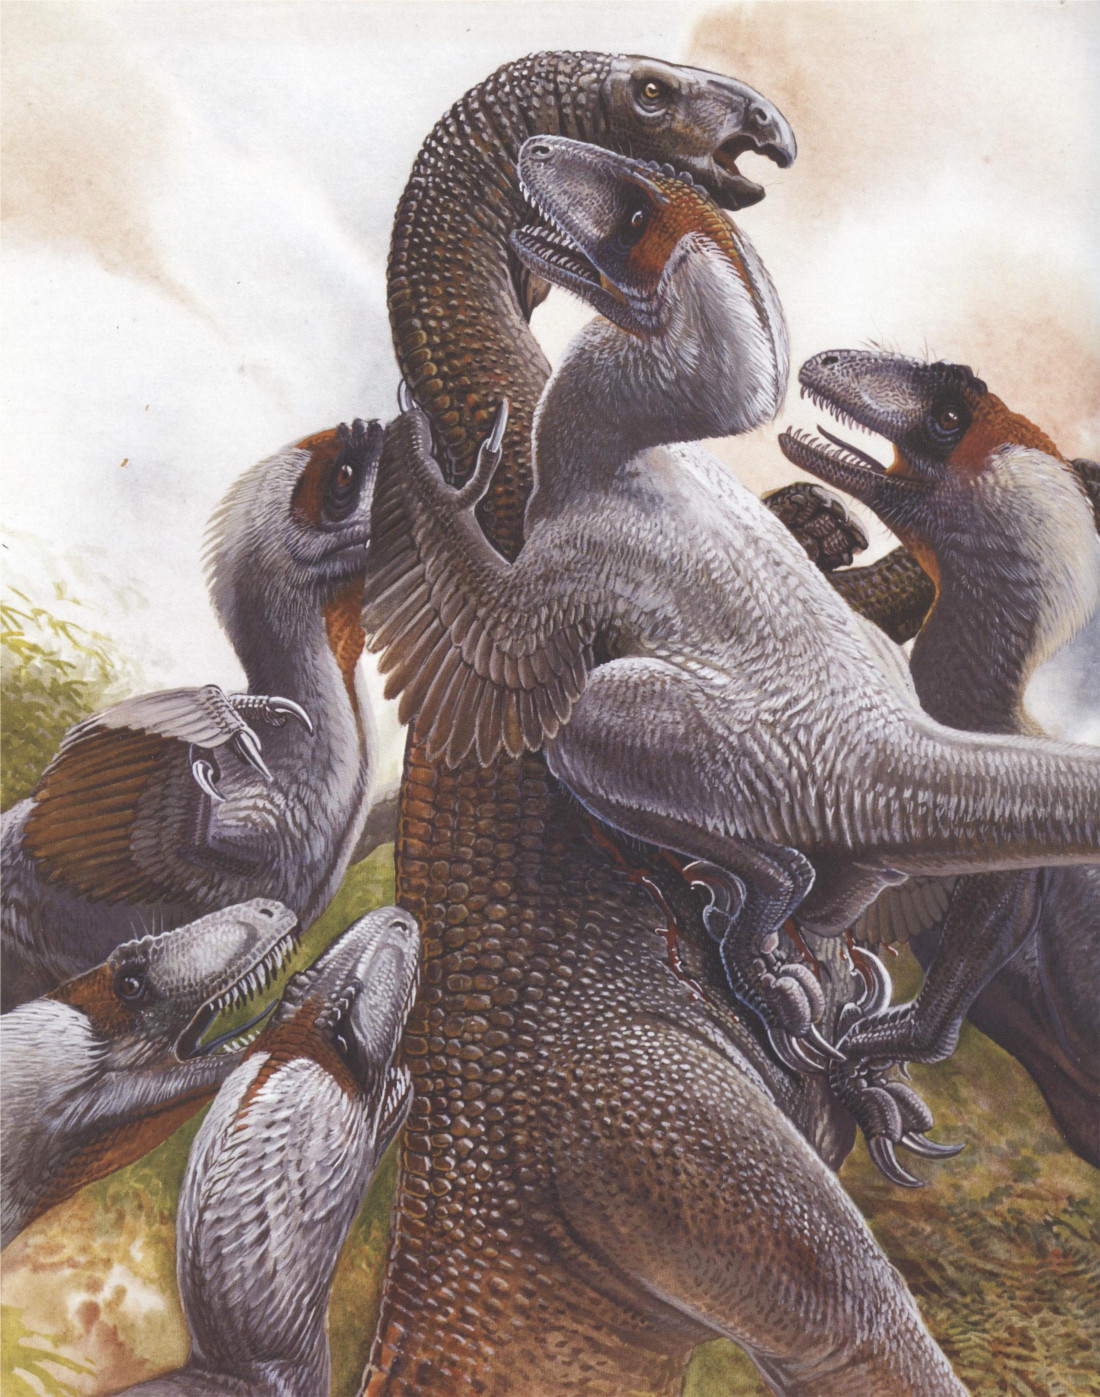 bensozia: Feathered Dinosaurs by Peter Schouten